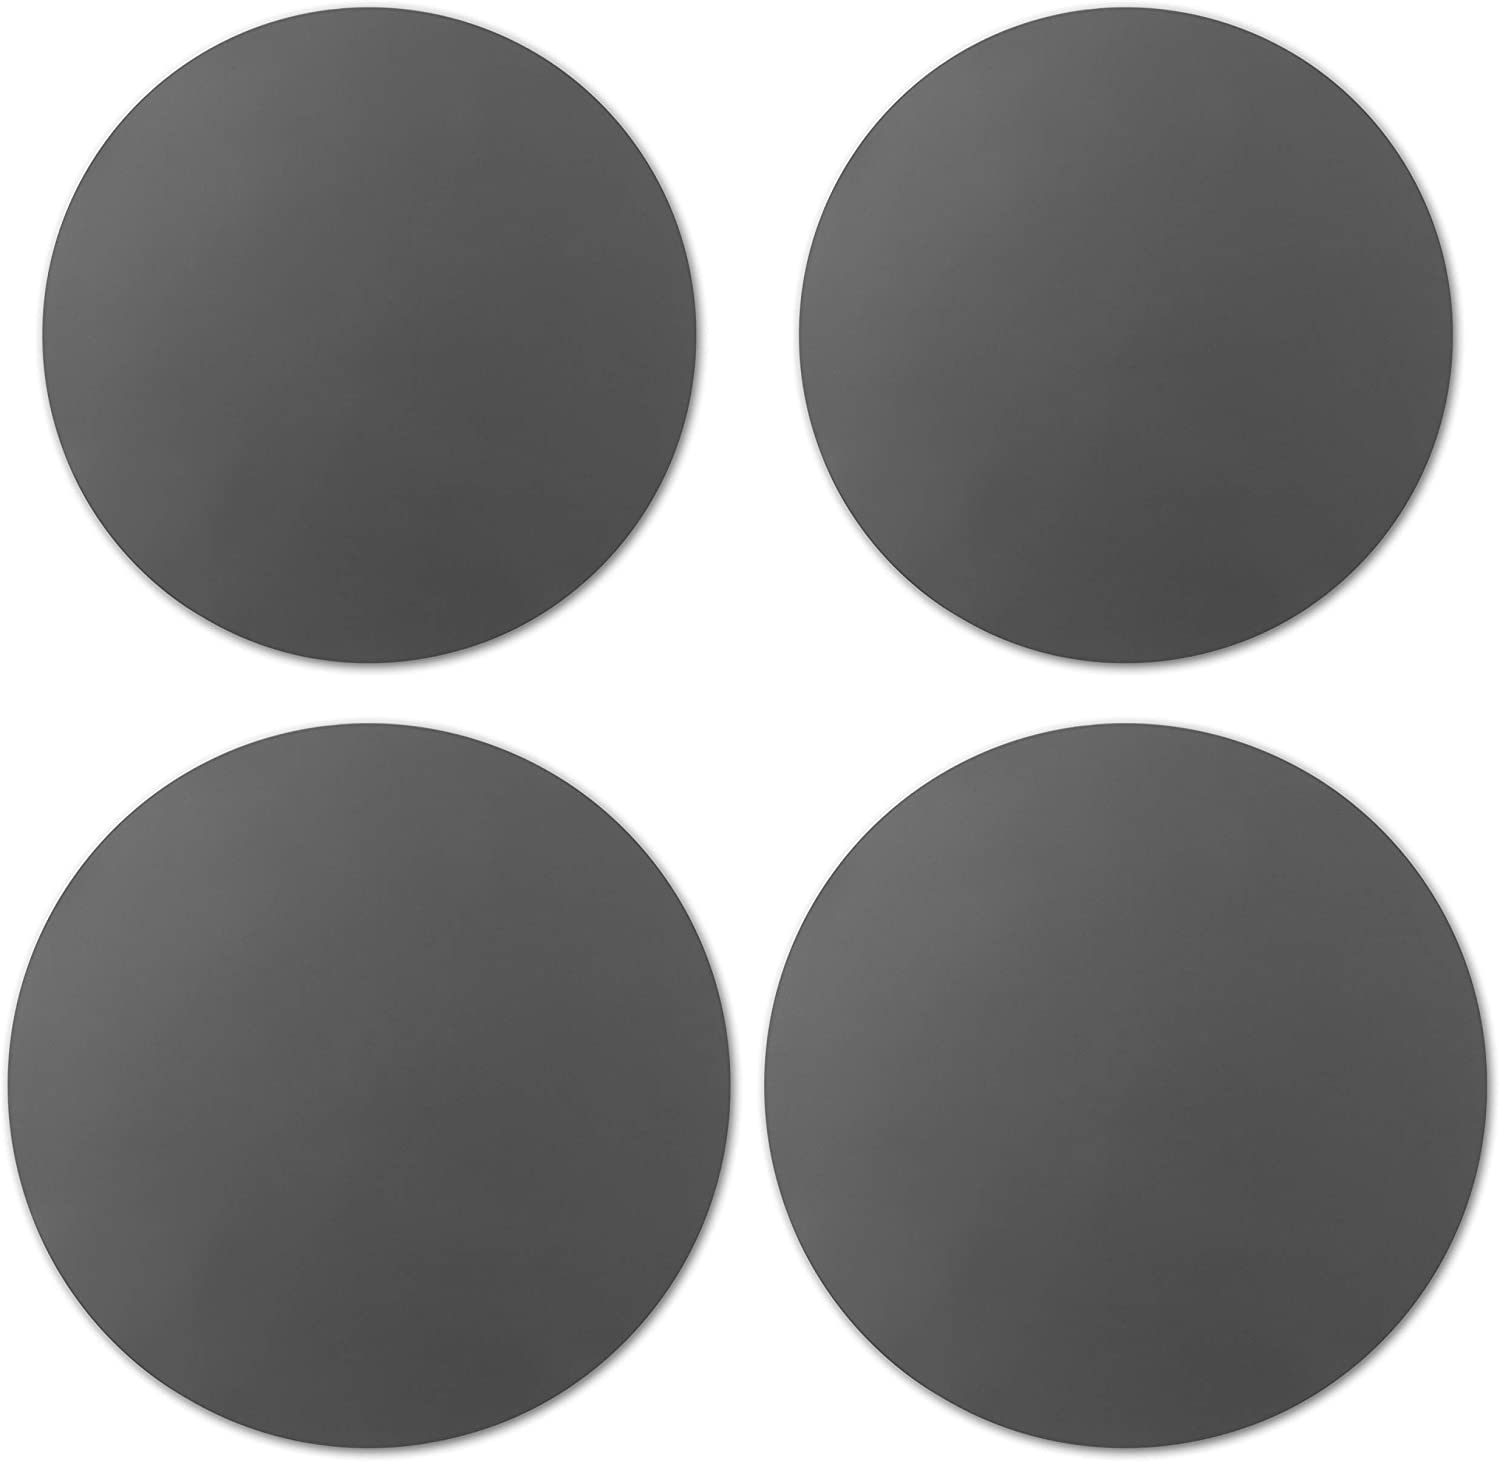 GROBRO7 4Pcs Silicone Microwave Mats Grey Round Hot Pot Pans Pad Holders Heat Resistance Nonstick Dishwasher Safe Splatter Guard Oven Baking Turntable Mat for Kitchen Countertop 2 Size 10/&12 Inch